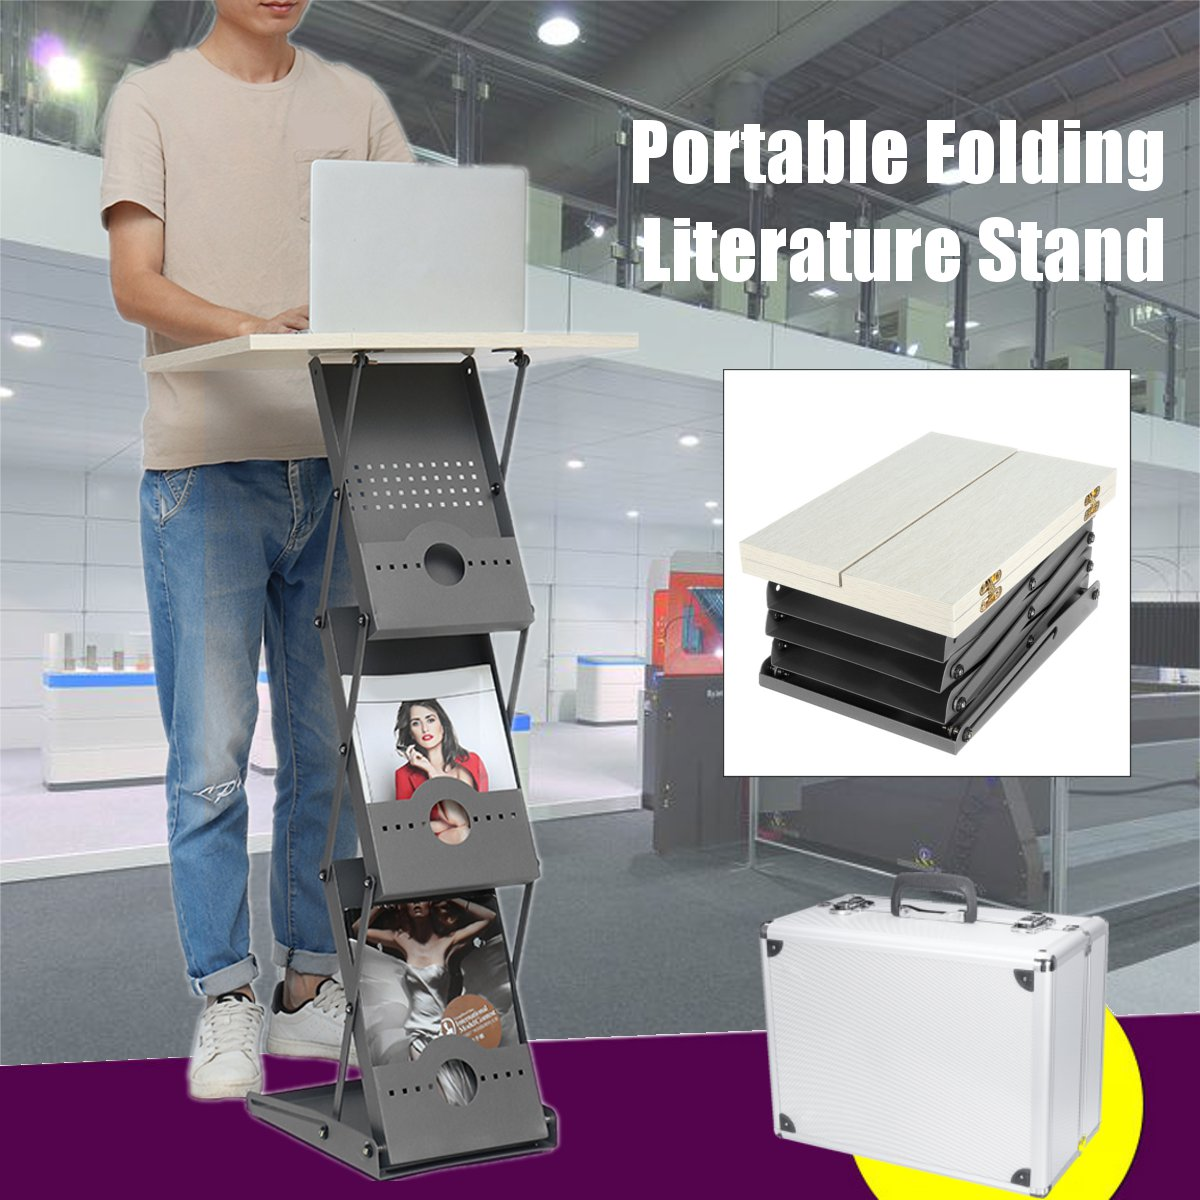 Folding Portable Literature Stand Laptop Desk Adjustable Exhibition Stand Floor Magazine Brochure Display Library Furniture Box